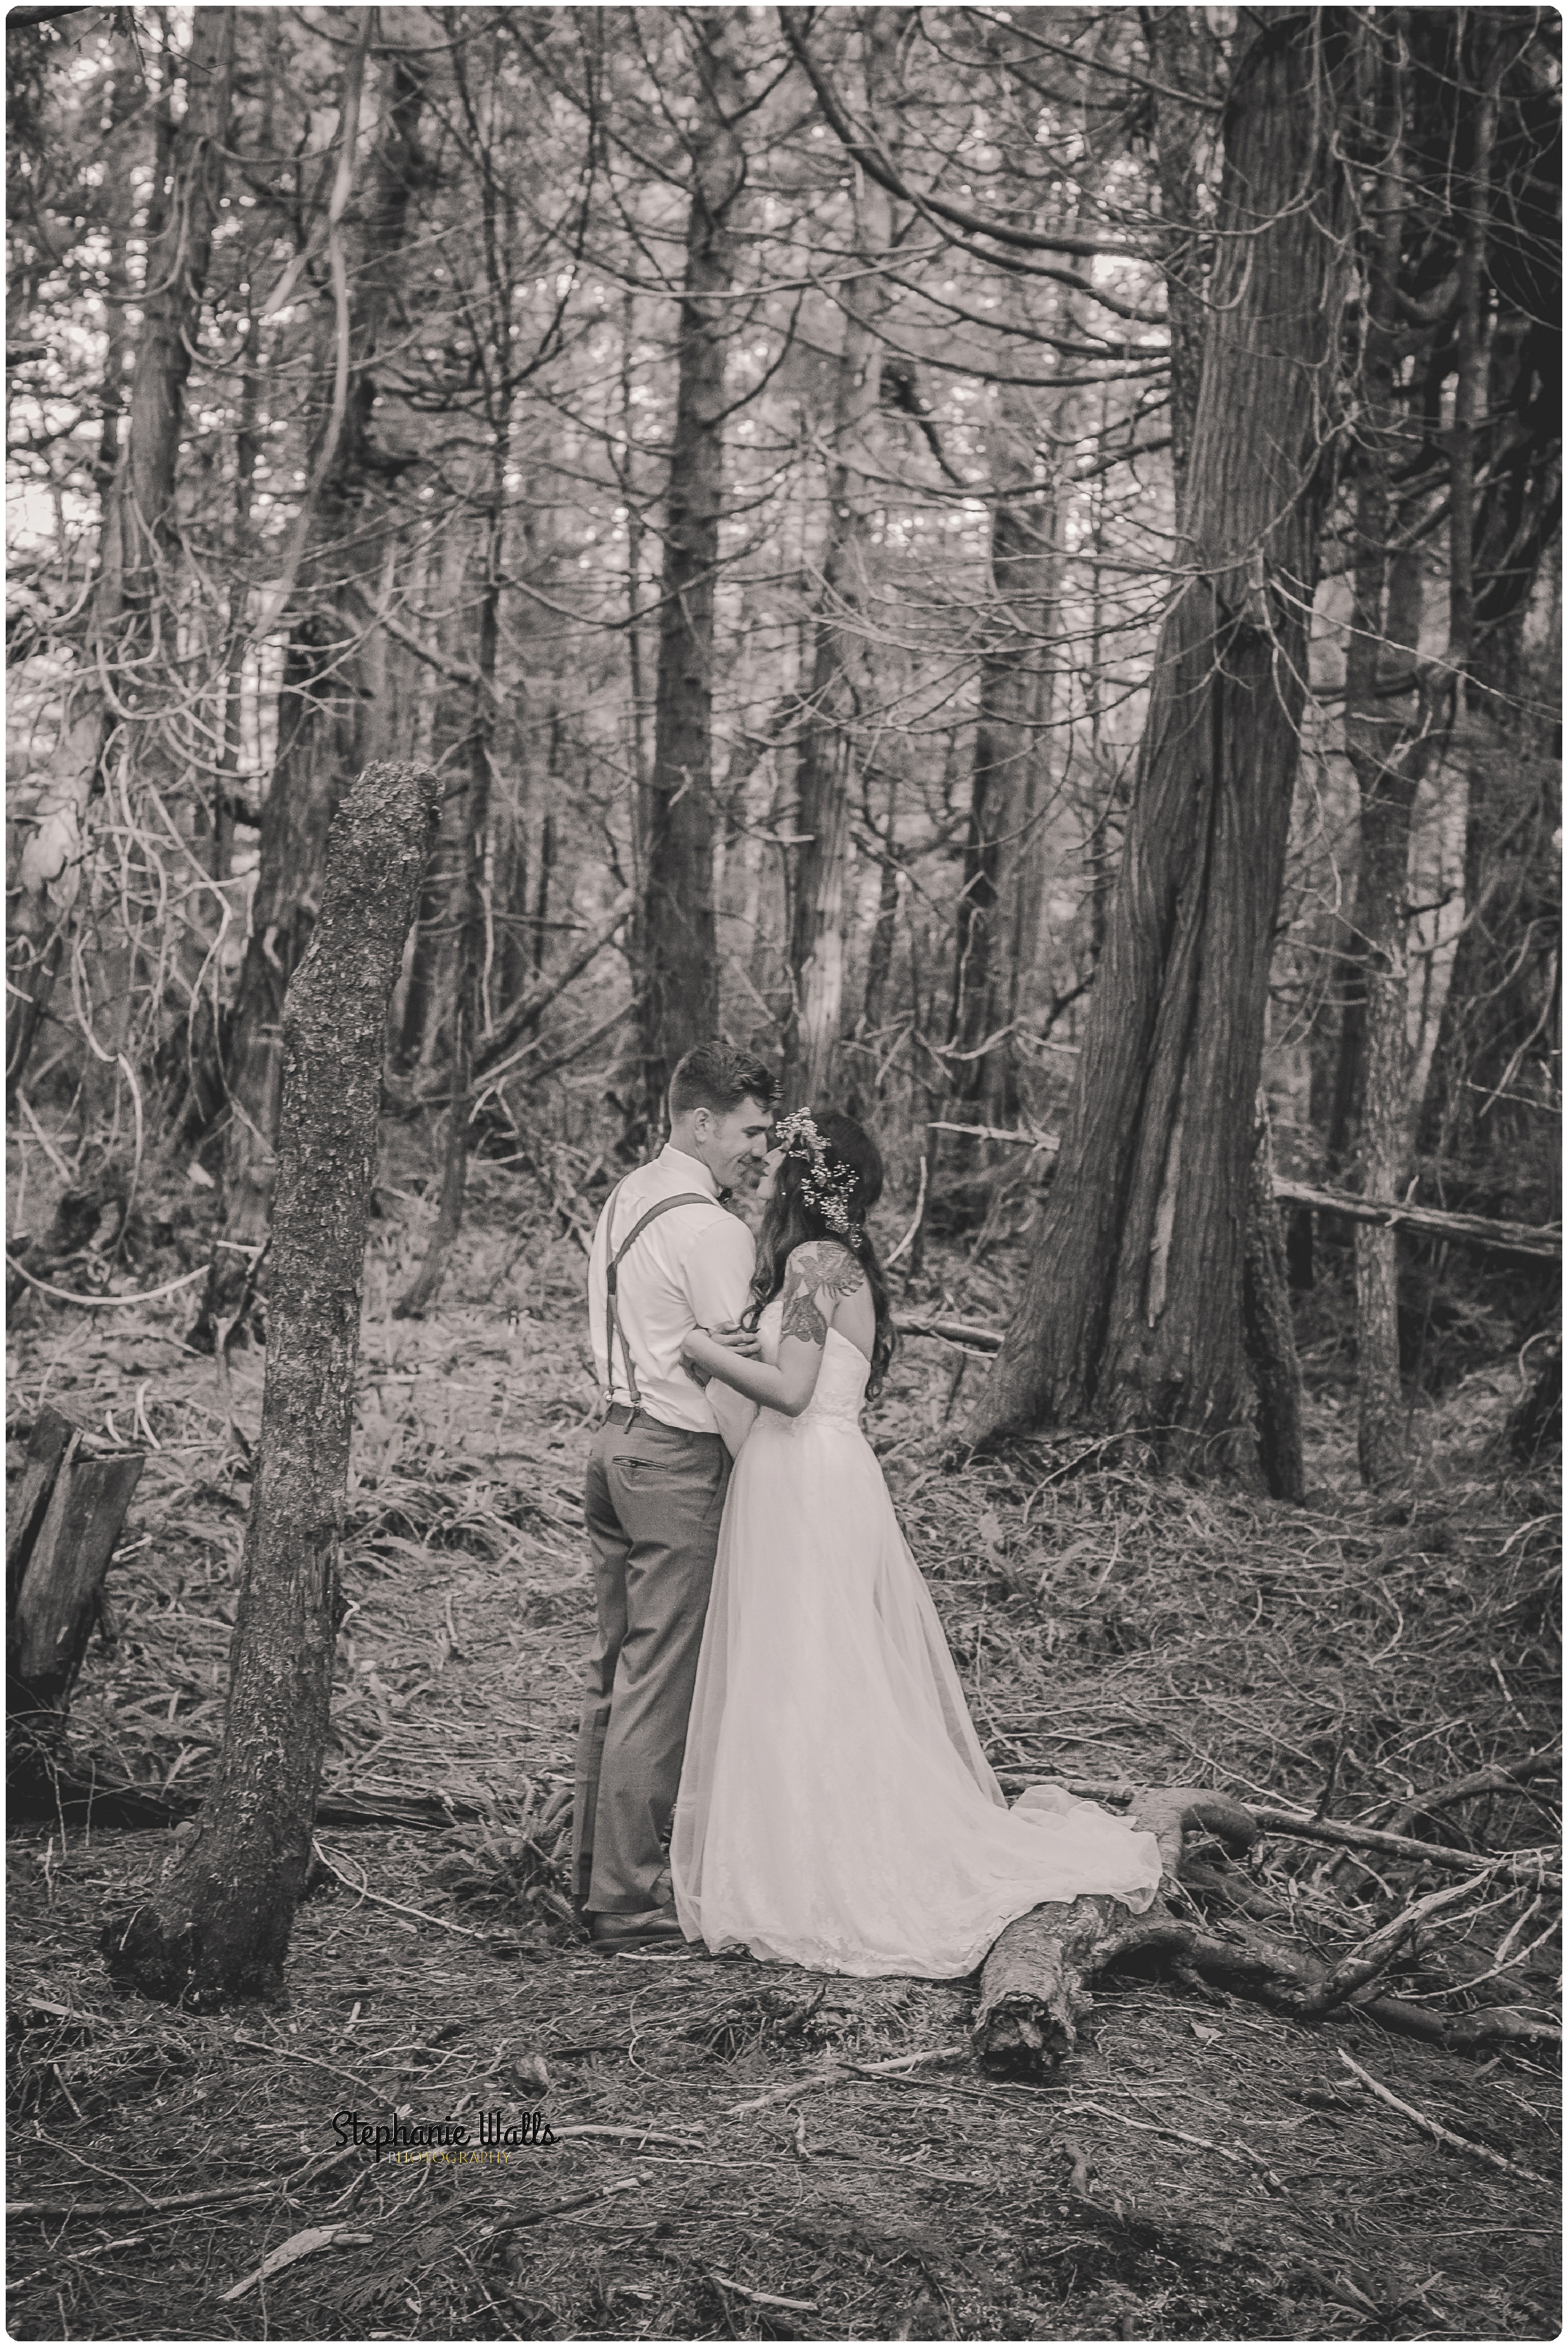 Belfour 452 INTIMATE CLIFFSIDE ELOPEMENT | CAPE FLATTERY NEAH BAY | STEPHANIE WALLS PHOTOGRAPHY